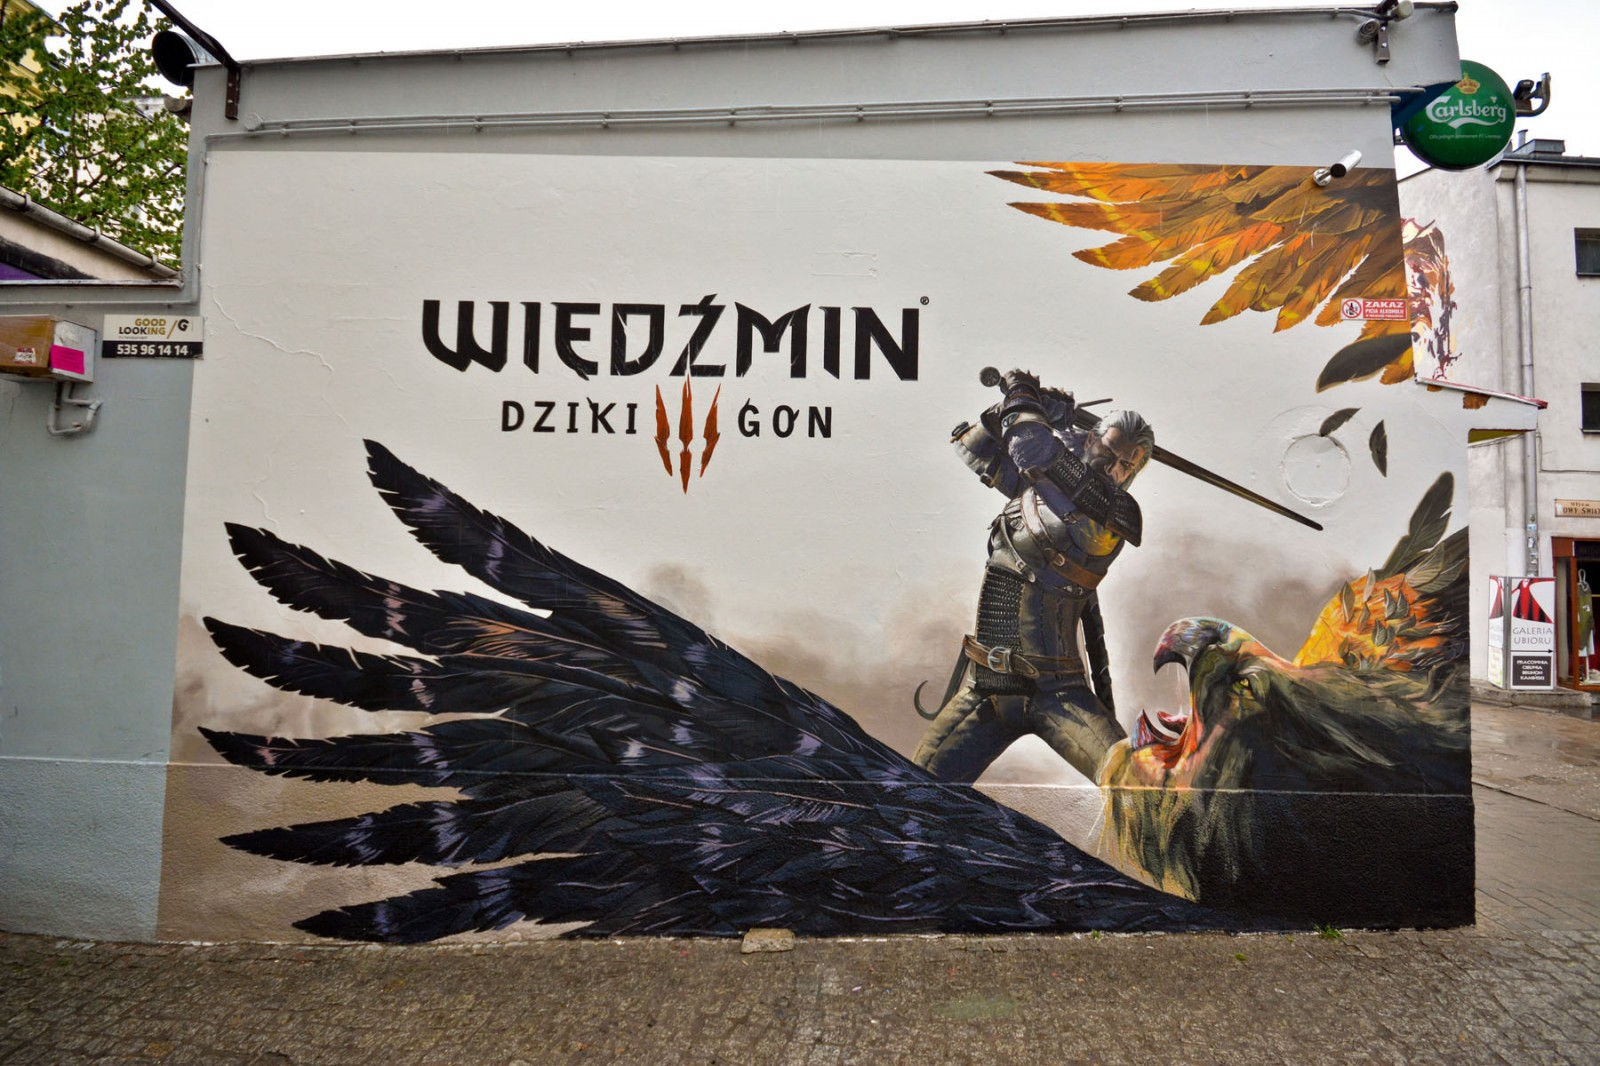 Spiel The Witcher: Wild Hunt in Warschau Pavillons Nowy Swiat | The Hexer: Wild Hunt Spiel | Portfolio